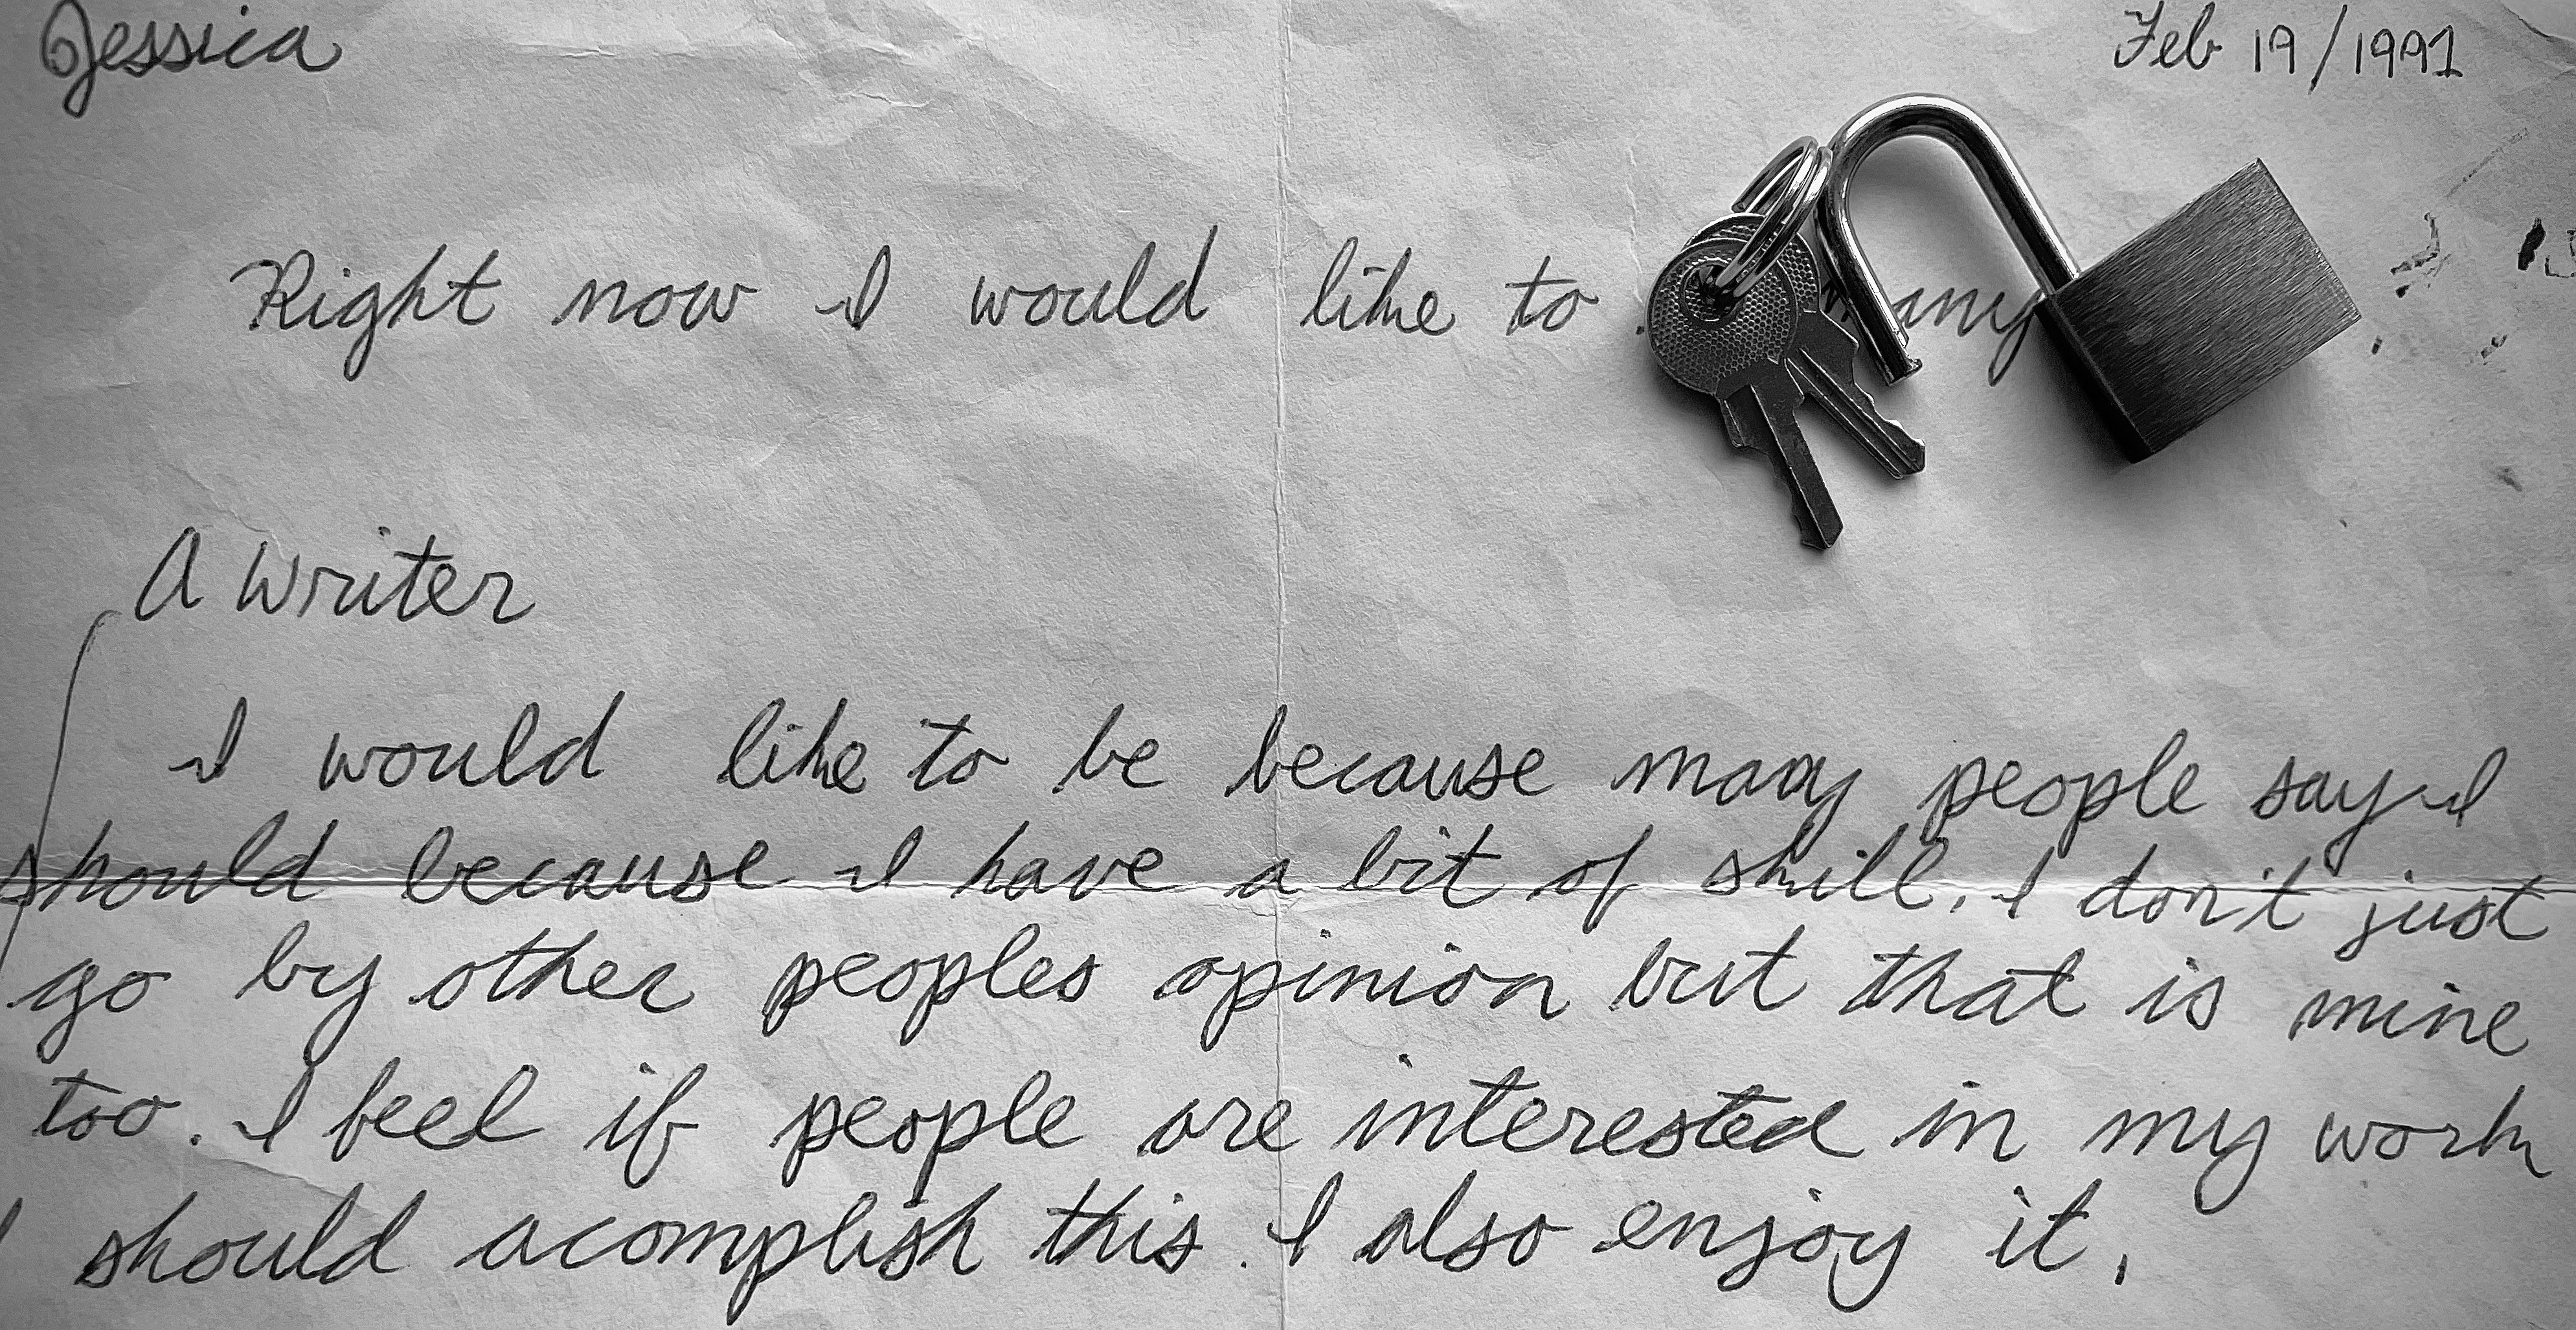 Photo of author's diary entry from 1991 with small lock and keys.